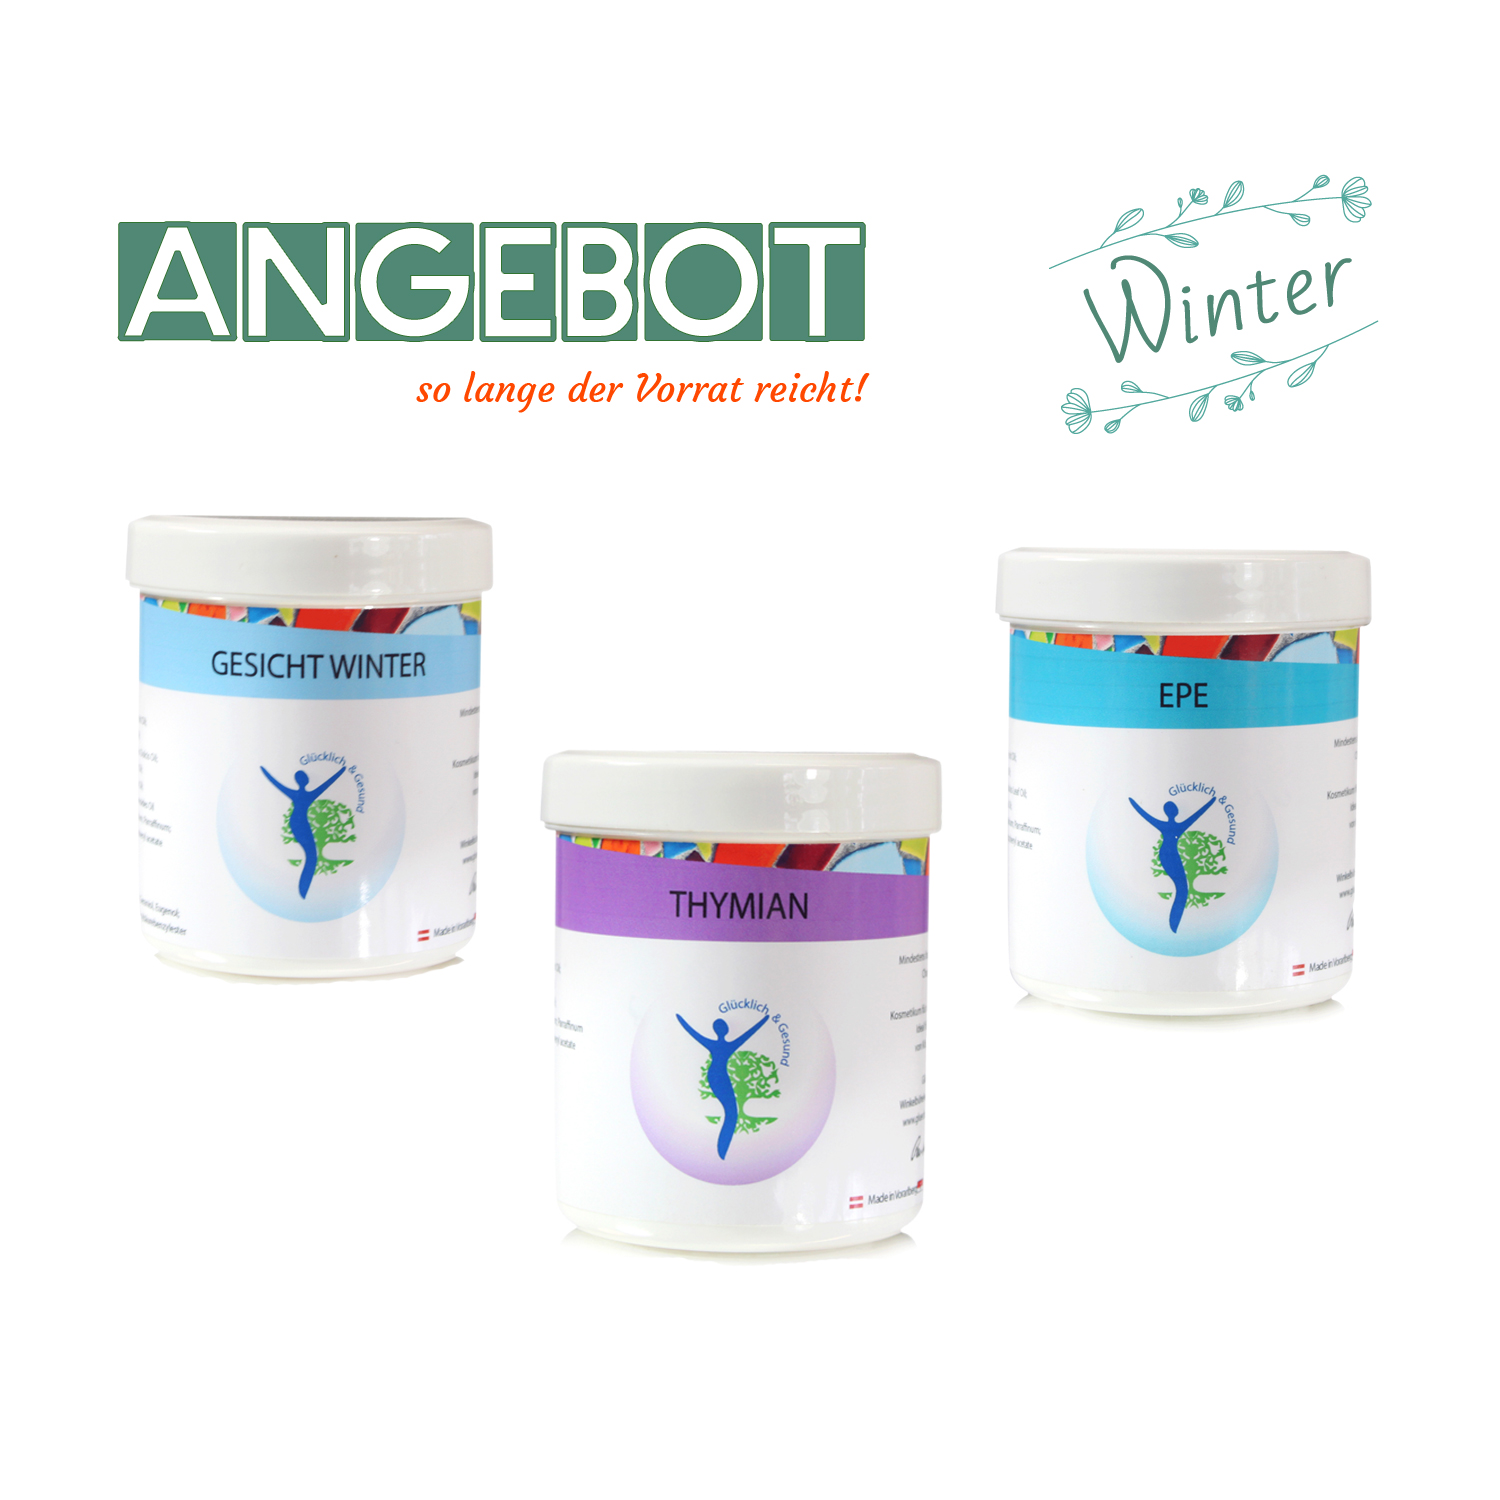 Angebot Winter